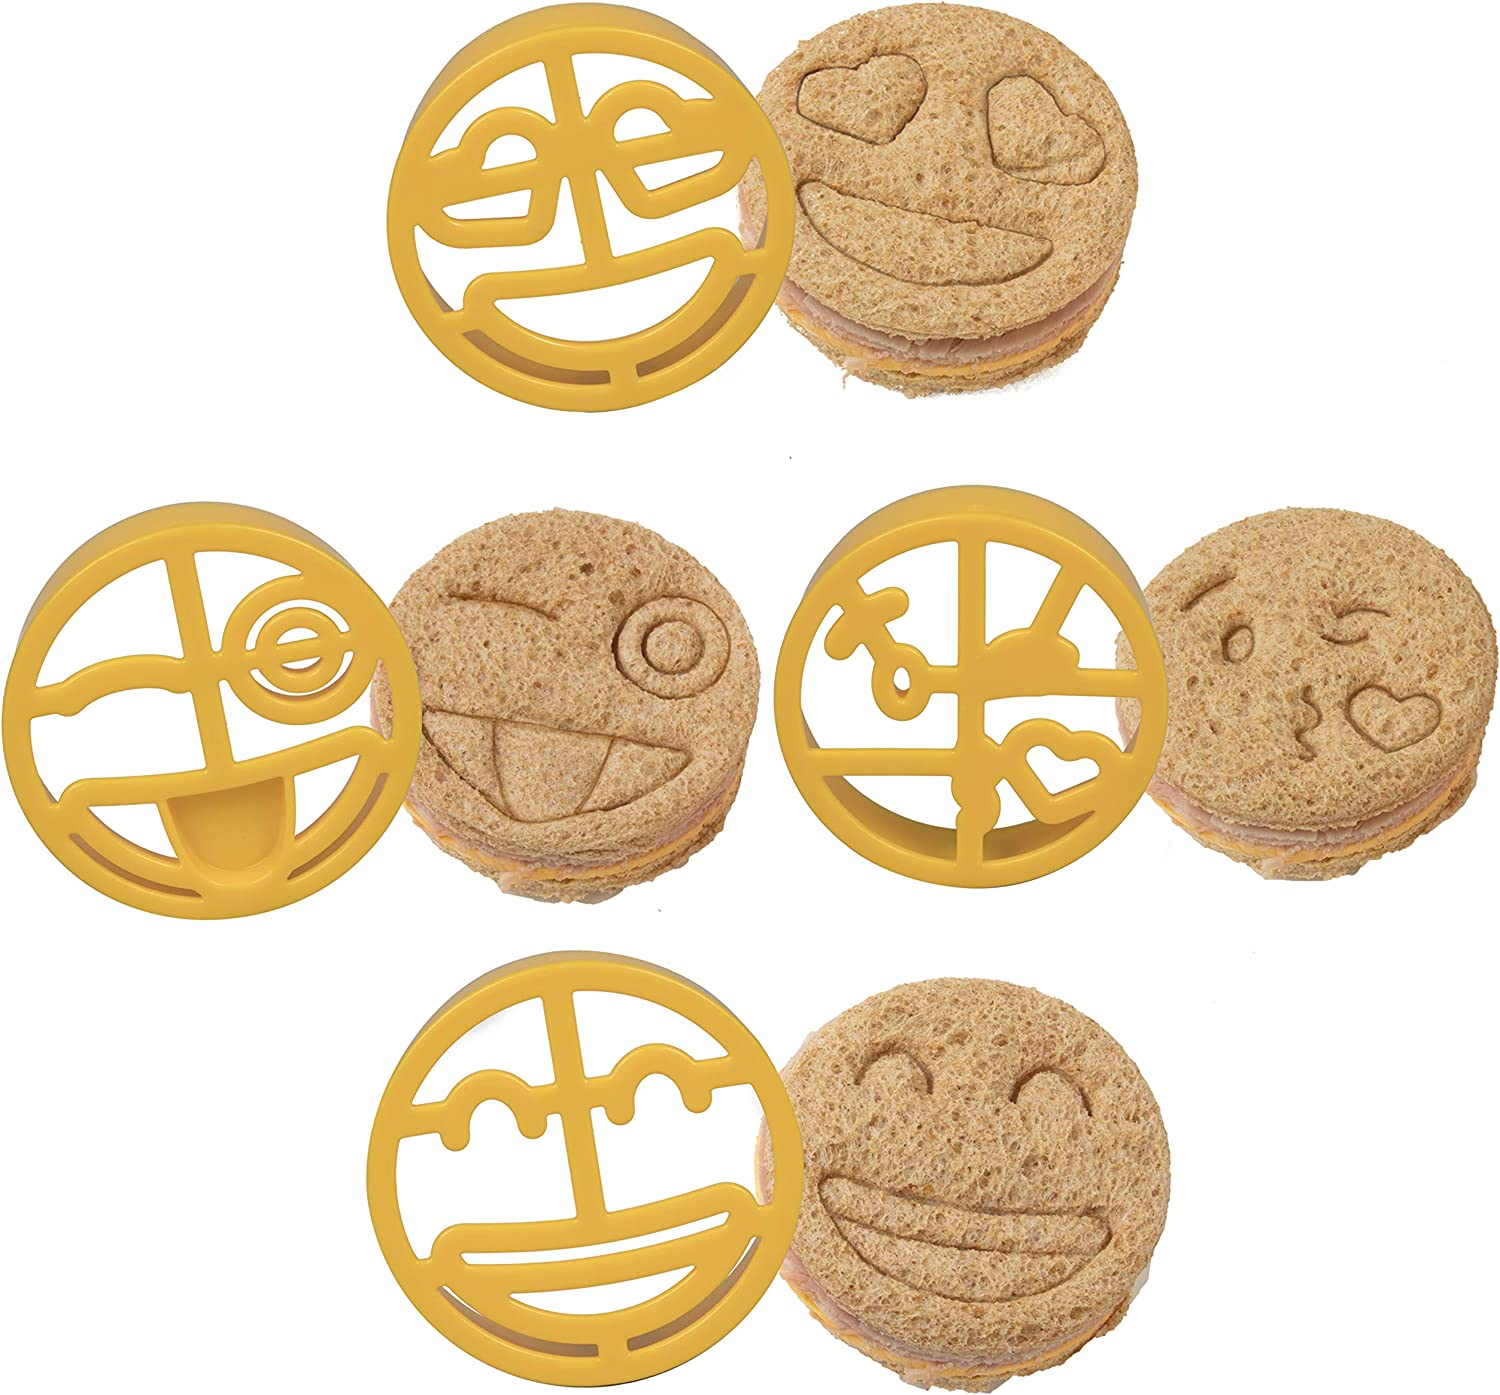 Emoji Sandwich Cutters 4 pk - Fun Bread, Food & Cookie Cutters w Emoji Designs - Great for Baking, Cooking & Kids Lunch or Bento Box and BPA Free